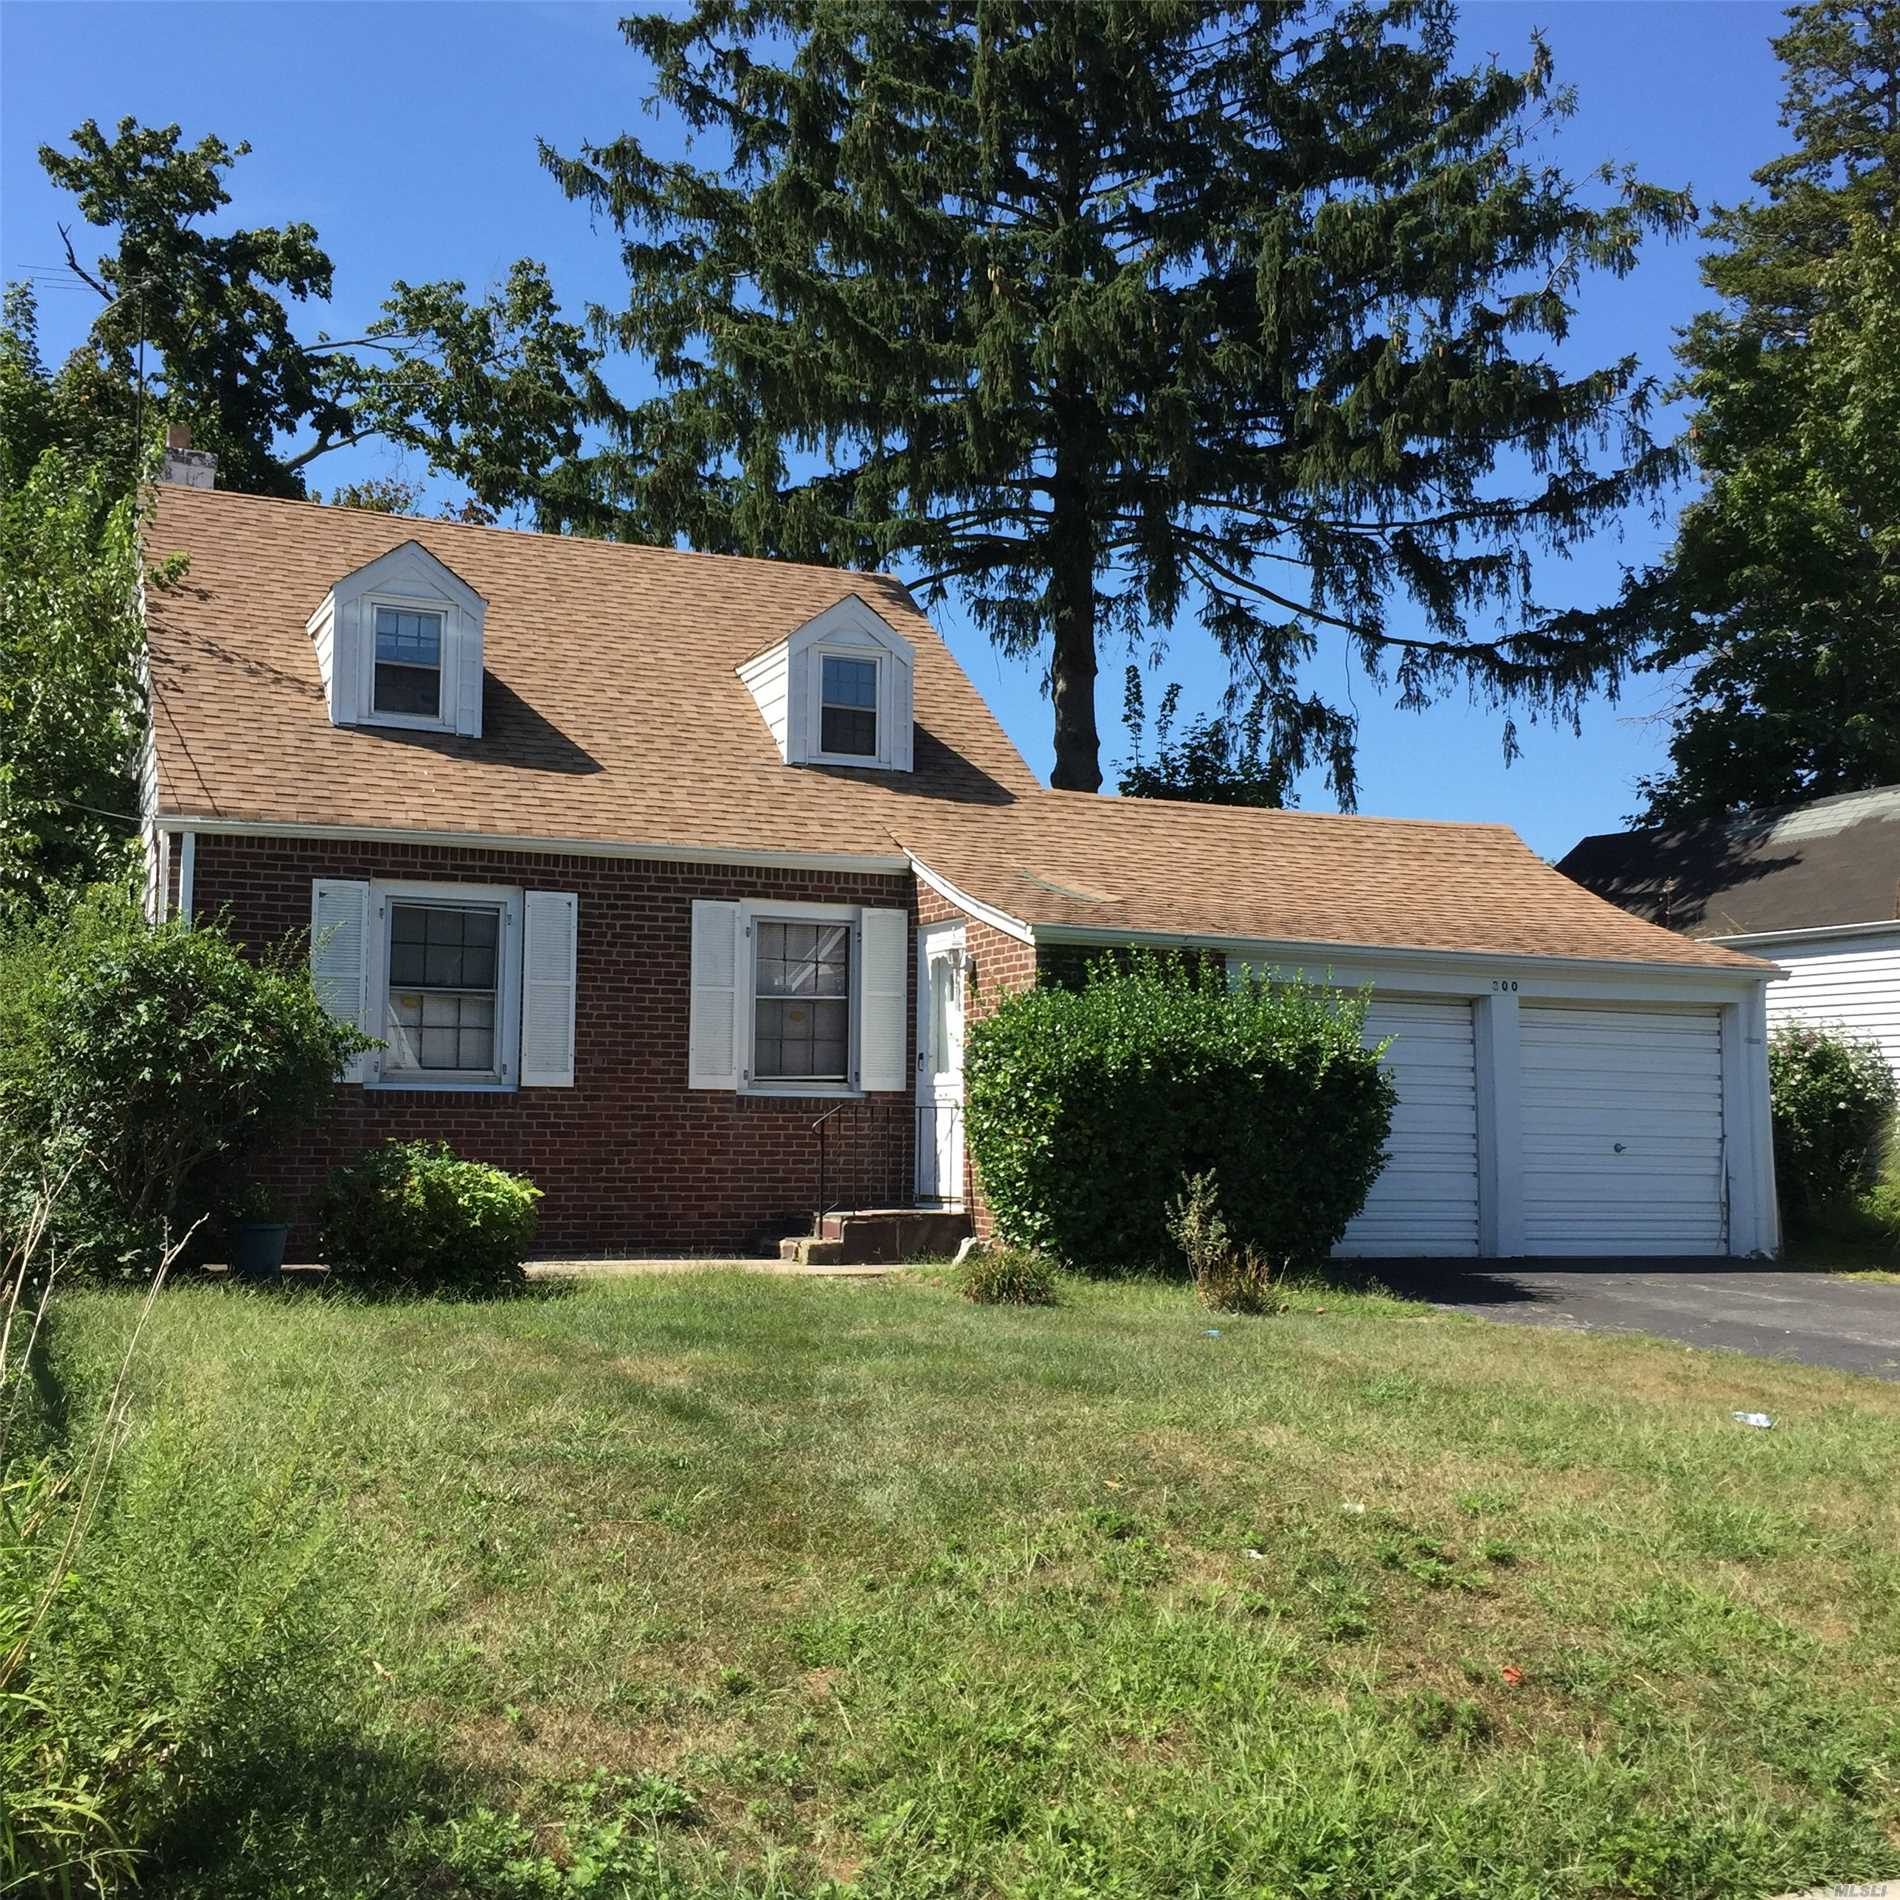 Spacious Living Room, Formal Dining Room, Updated Kitchen & Bath, Finished Basement, Deck, Large Property.